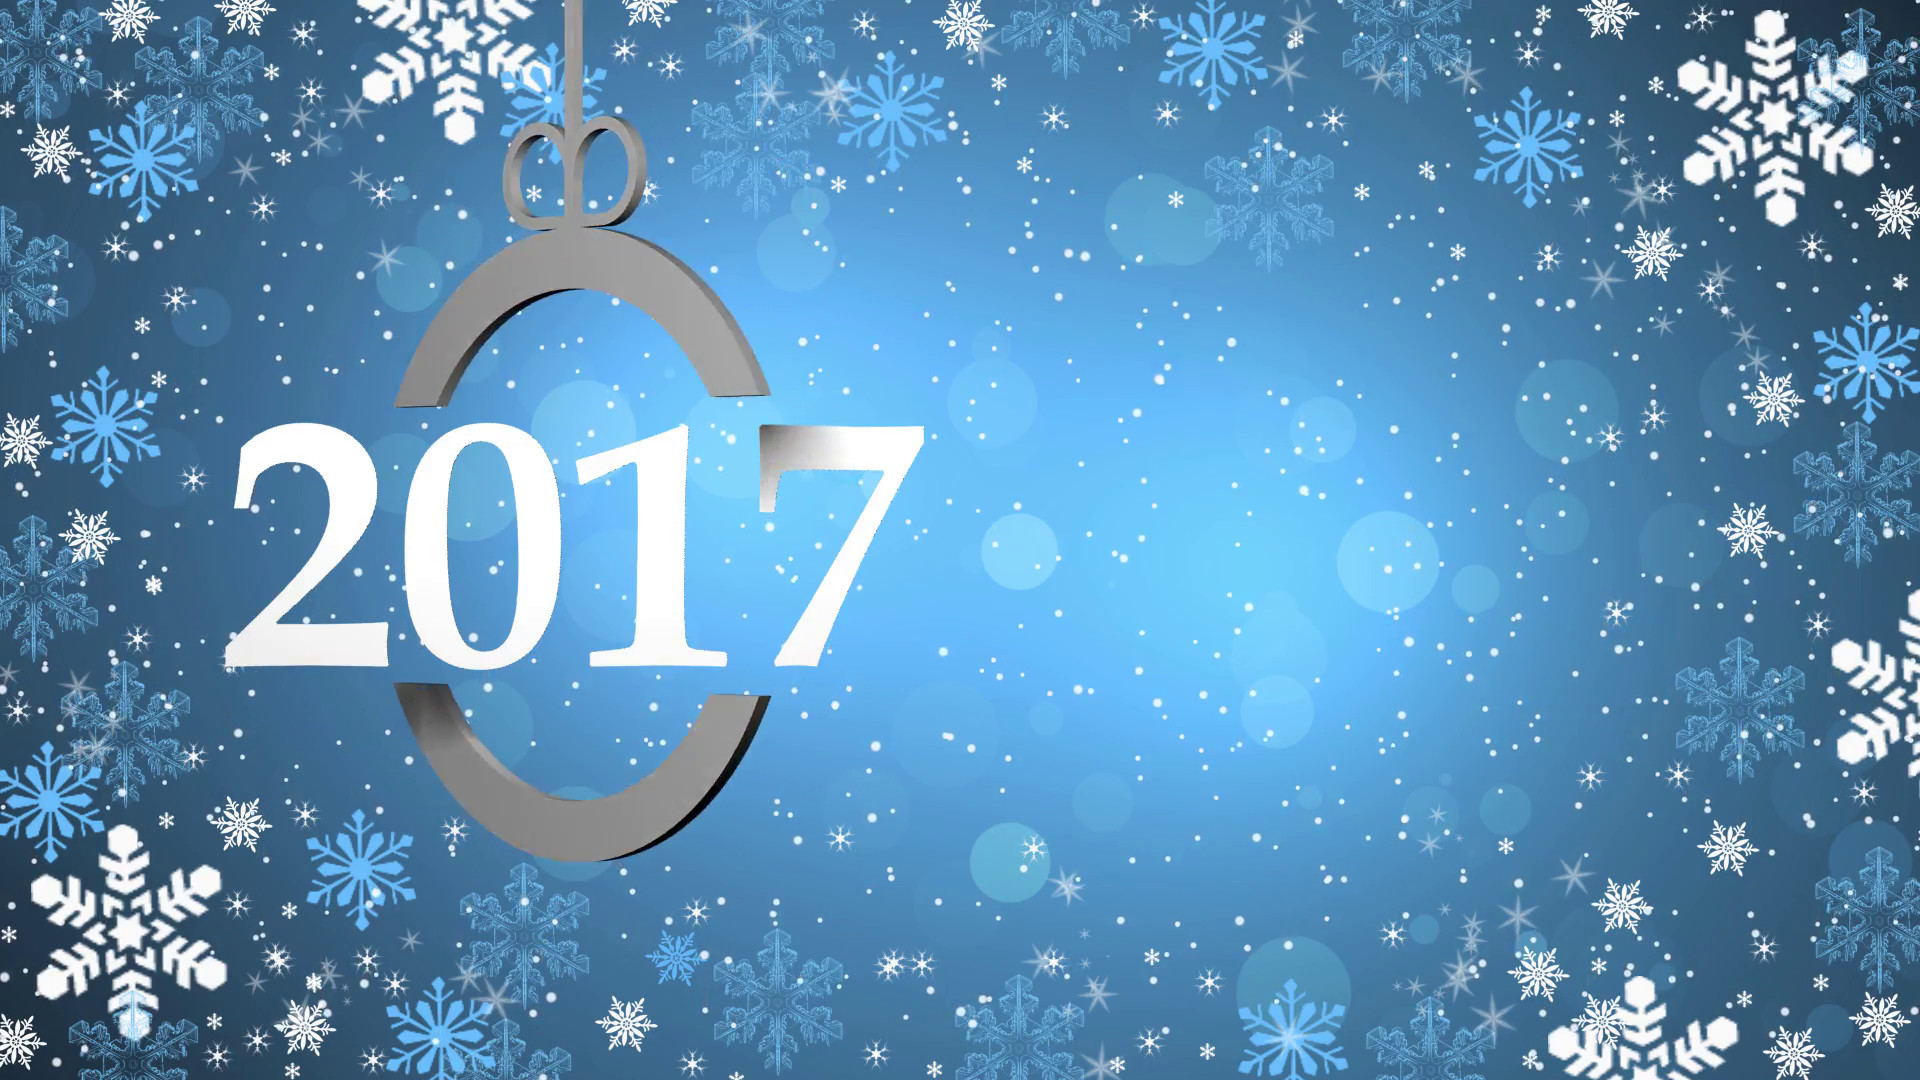 Subscription Library Happy New Year,Christmas,3d winter background 2017